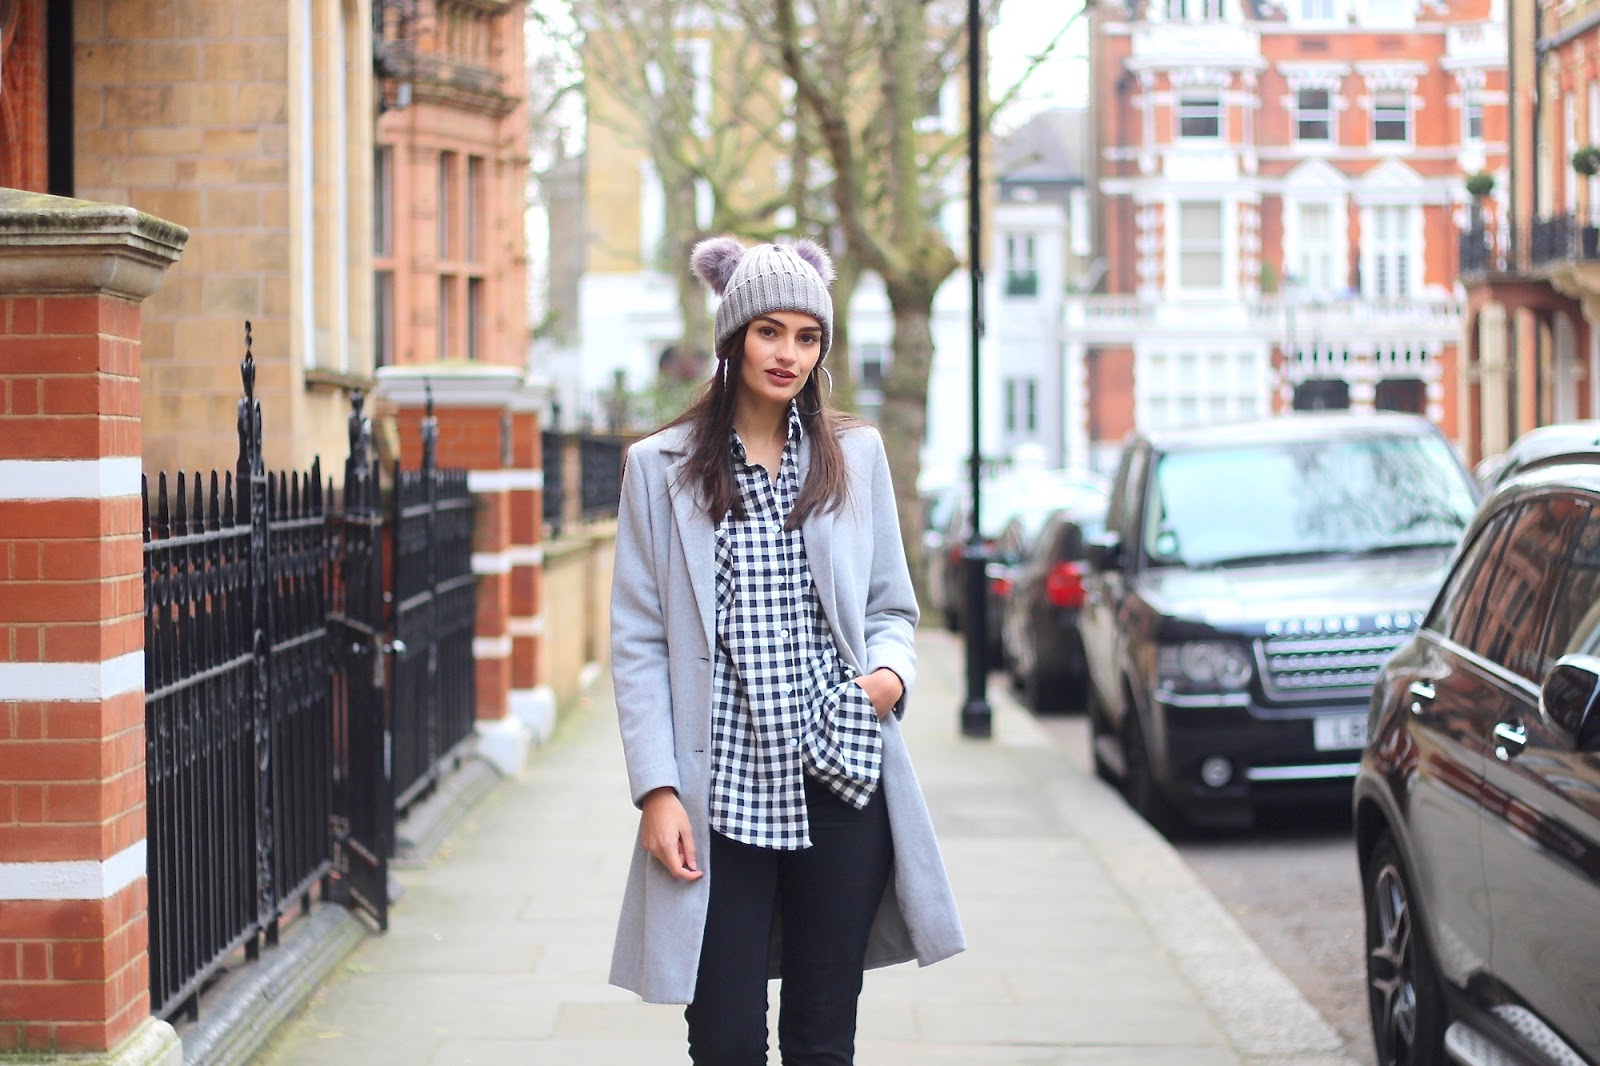 gingham shirt peexo london street style